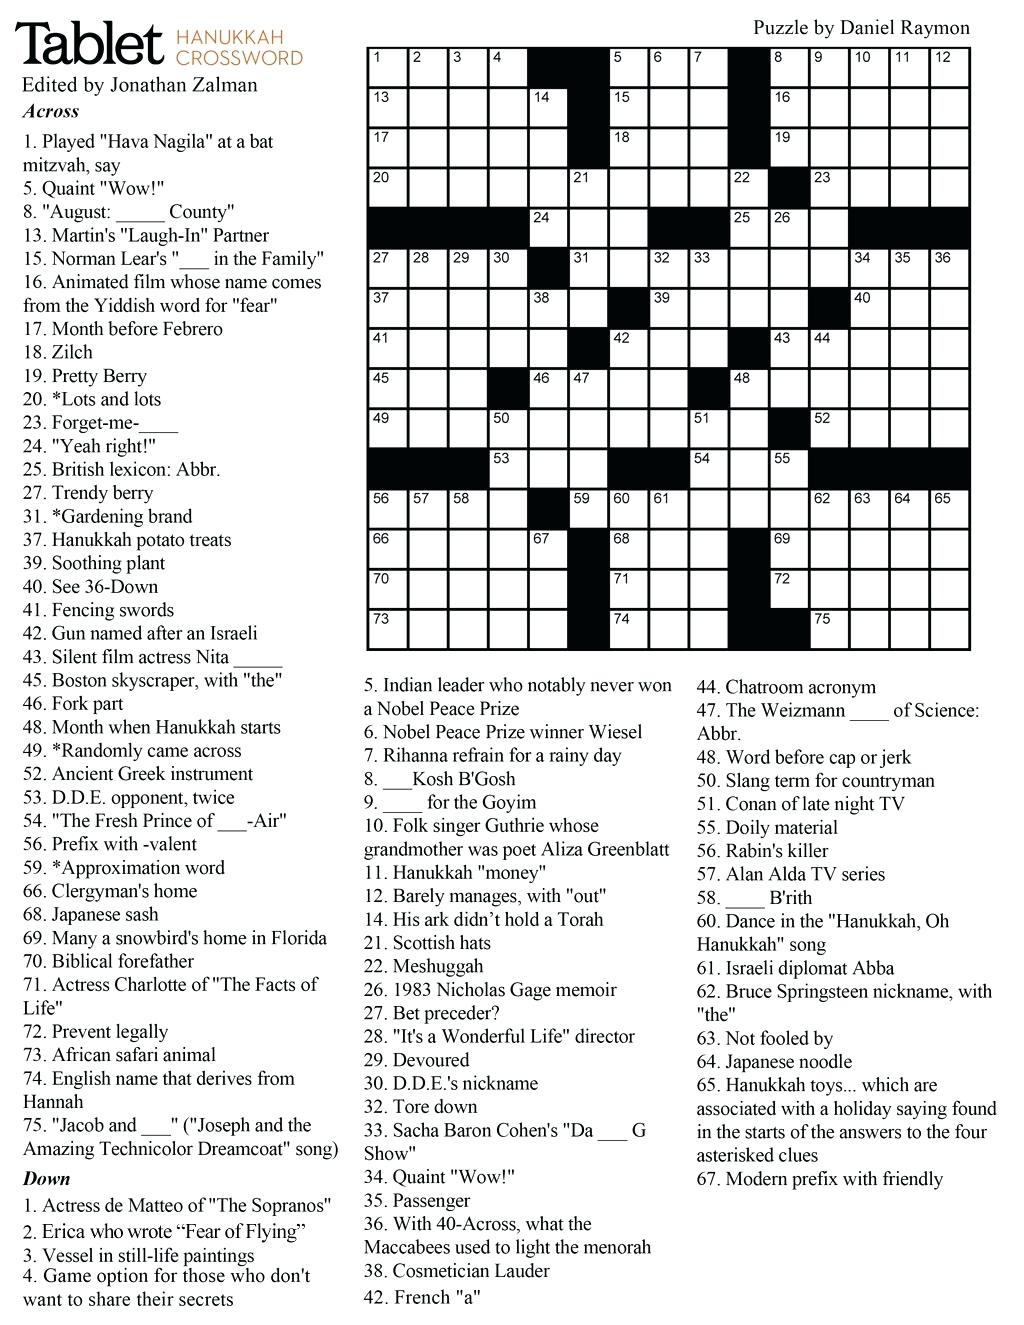 Middle School Crossword Puzzles Raunchy Some Of The Words In The - Printable Crossword Puzzles High School